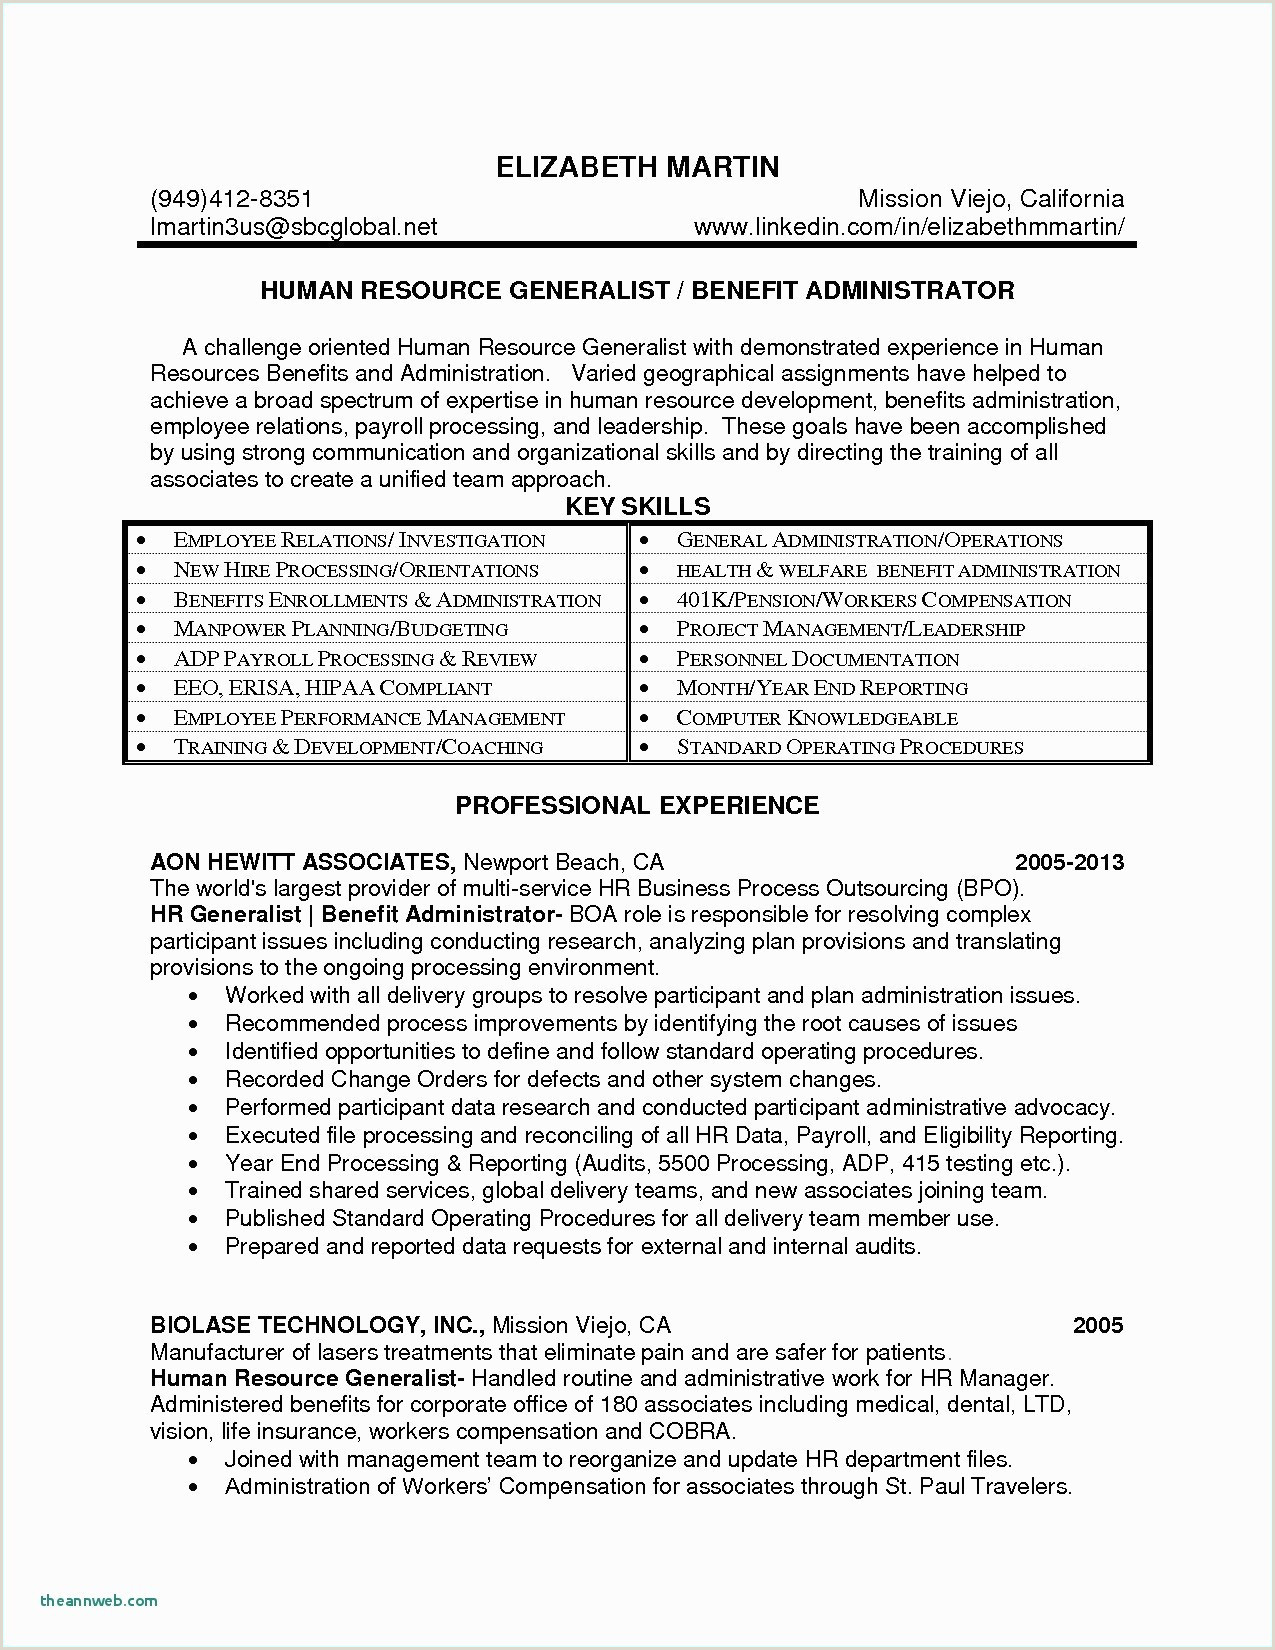 Cv Samples for Uae Jobs Property Management Resume Example New Property Manager